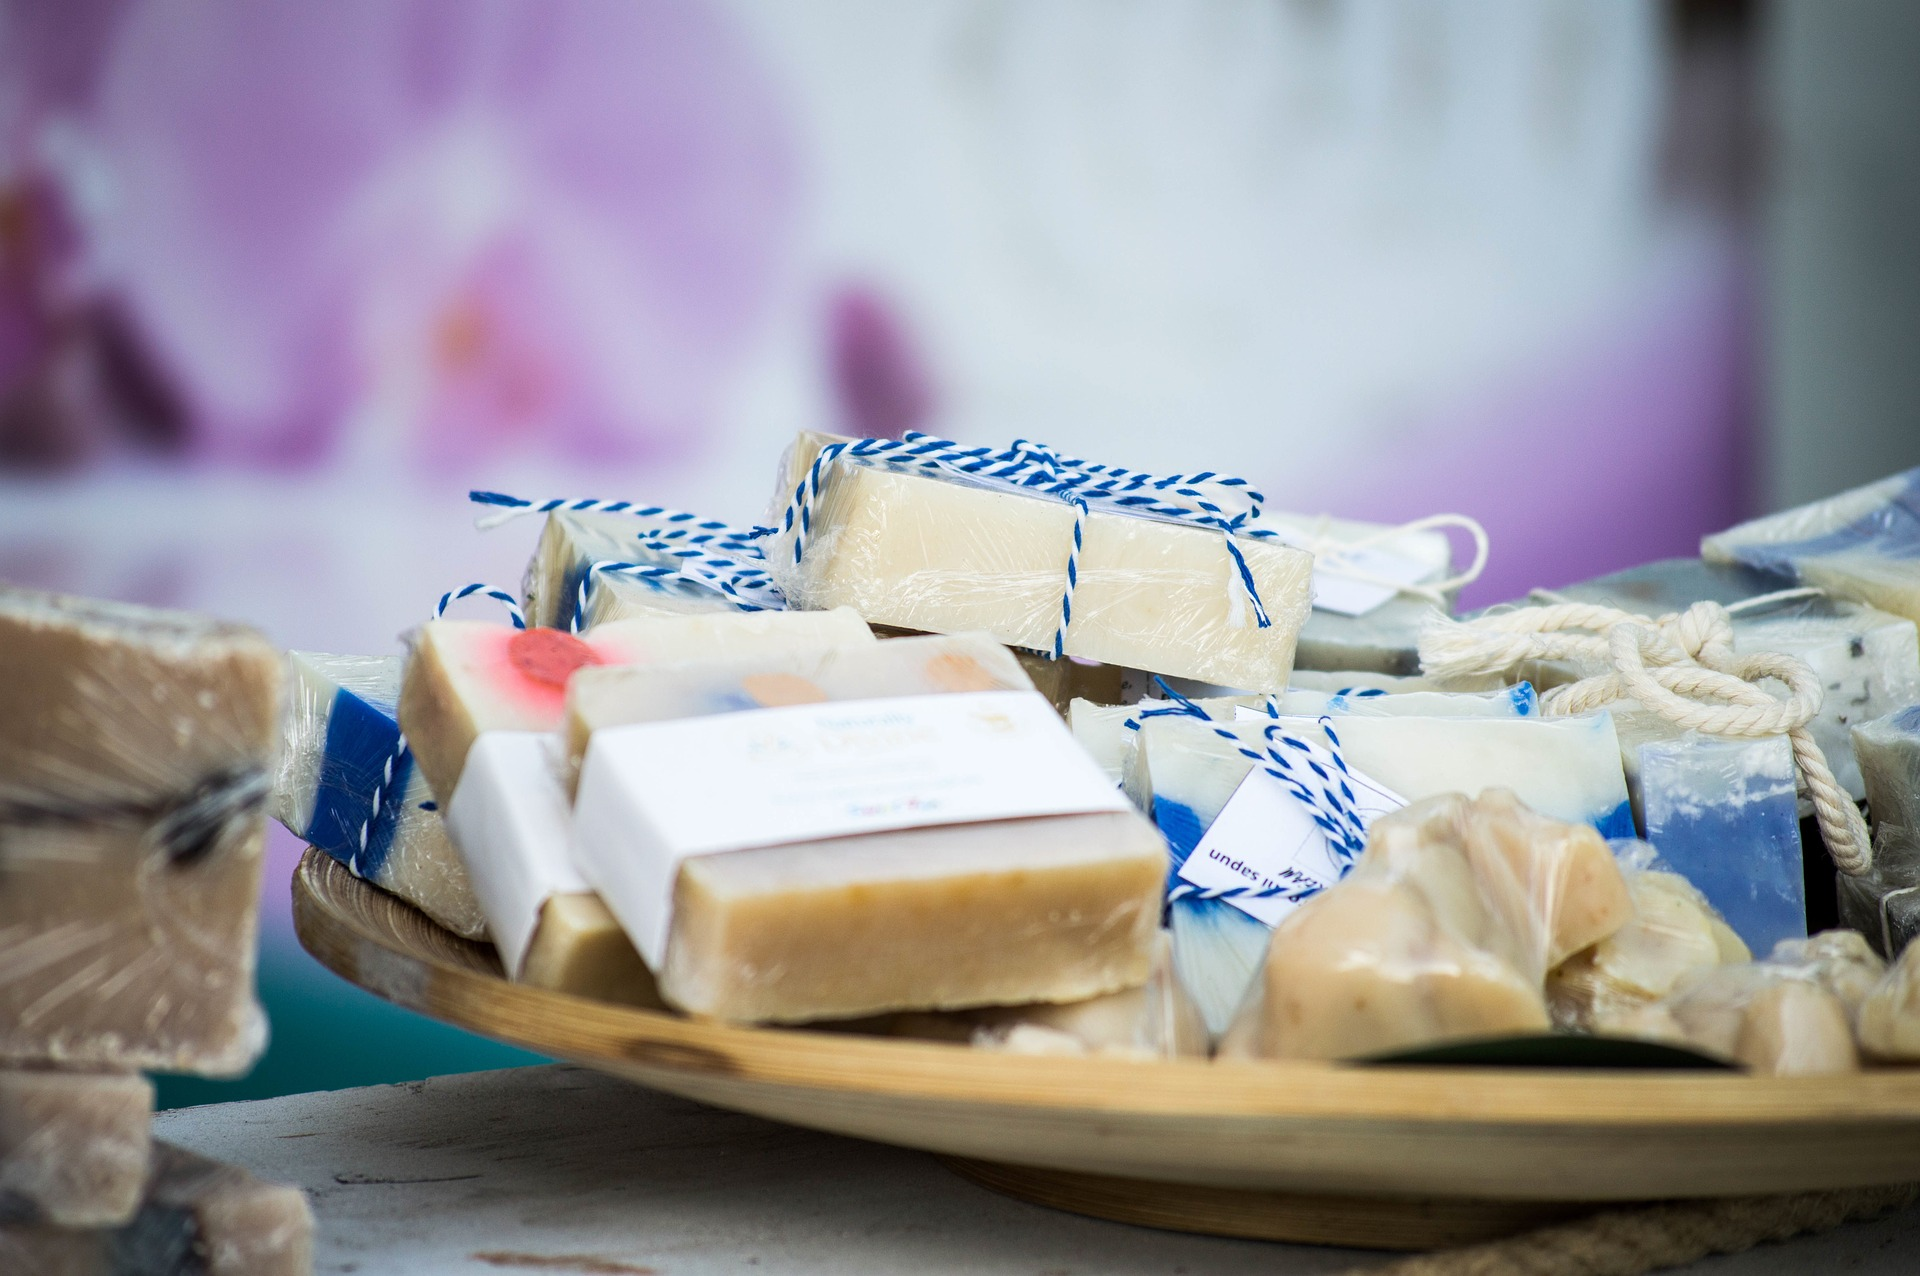 Teen/Tween Make & Take: Make Your Own Soap (12+ YRS)